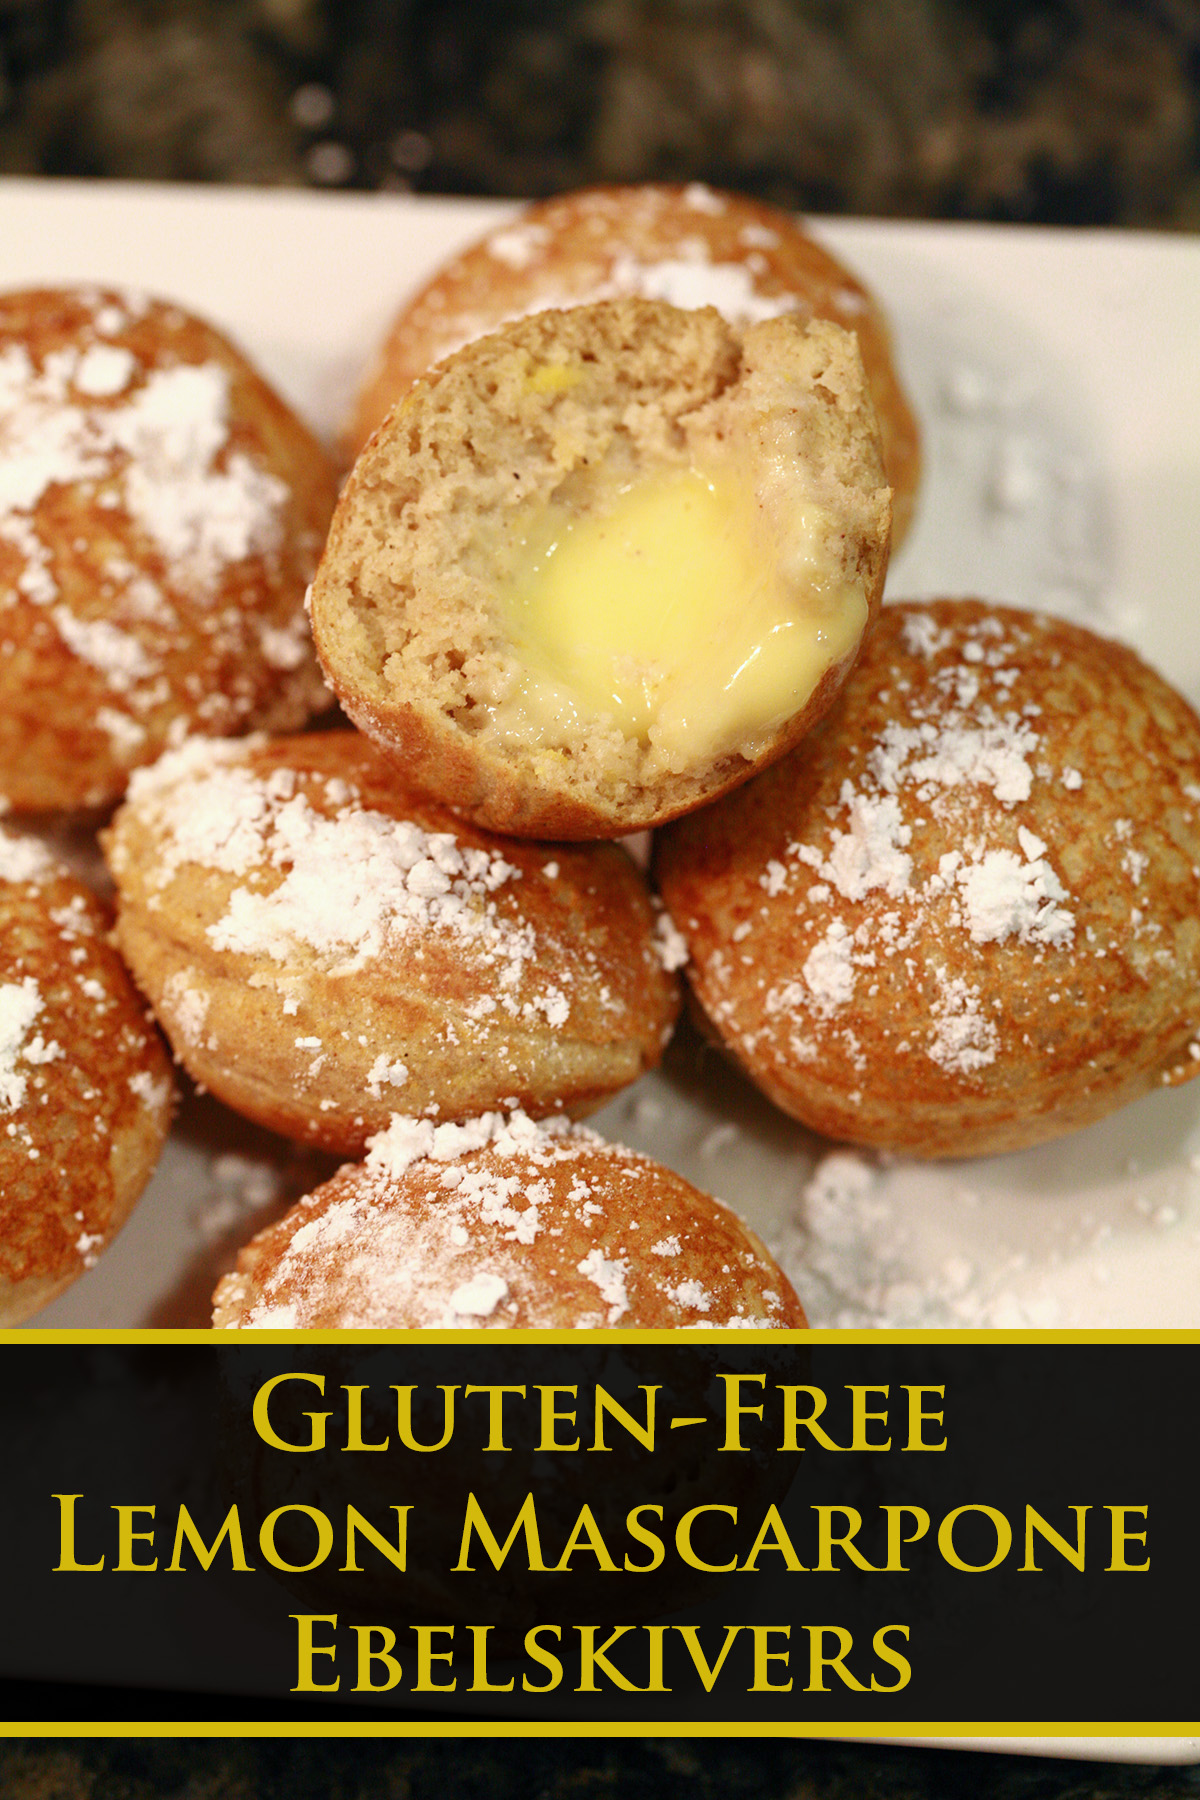 Several gluten-free lemon mascarpone ebelskivers - bite sized stuffed pancakes - on a plate.  They're dusted with powdered sugar.